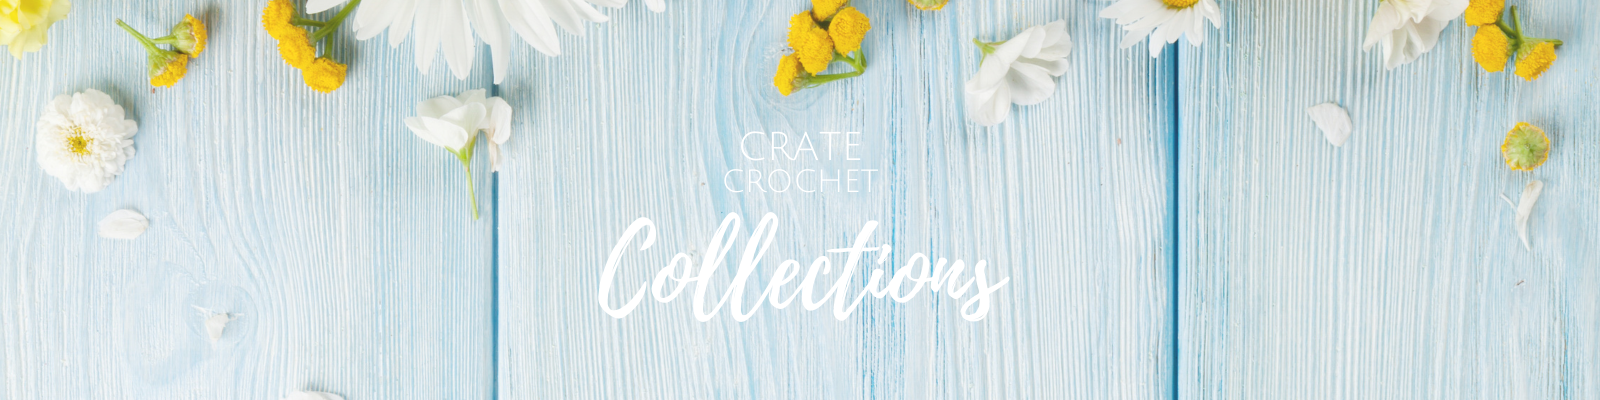 crate crochet shop collections